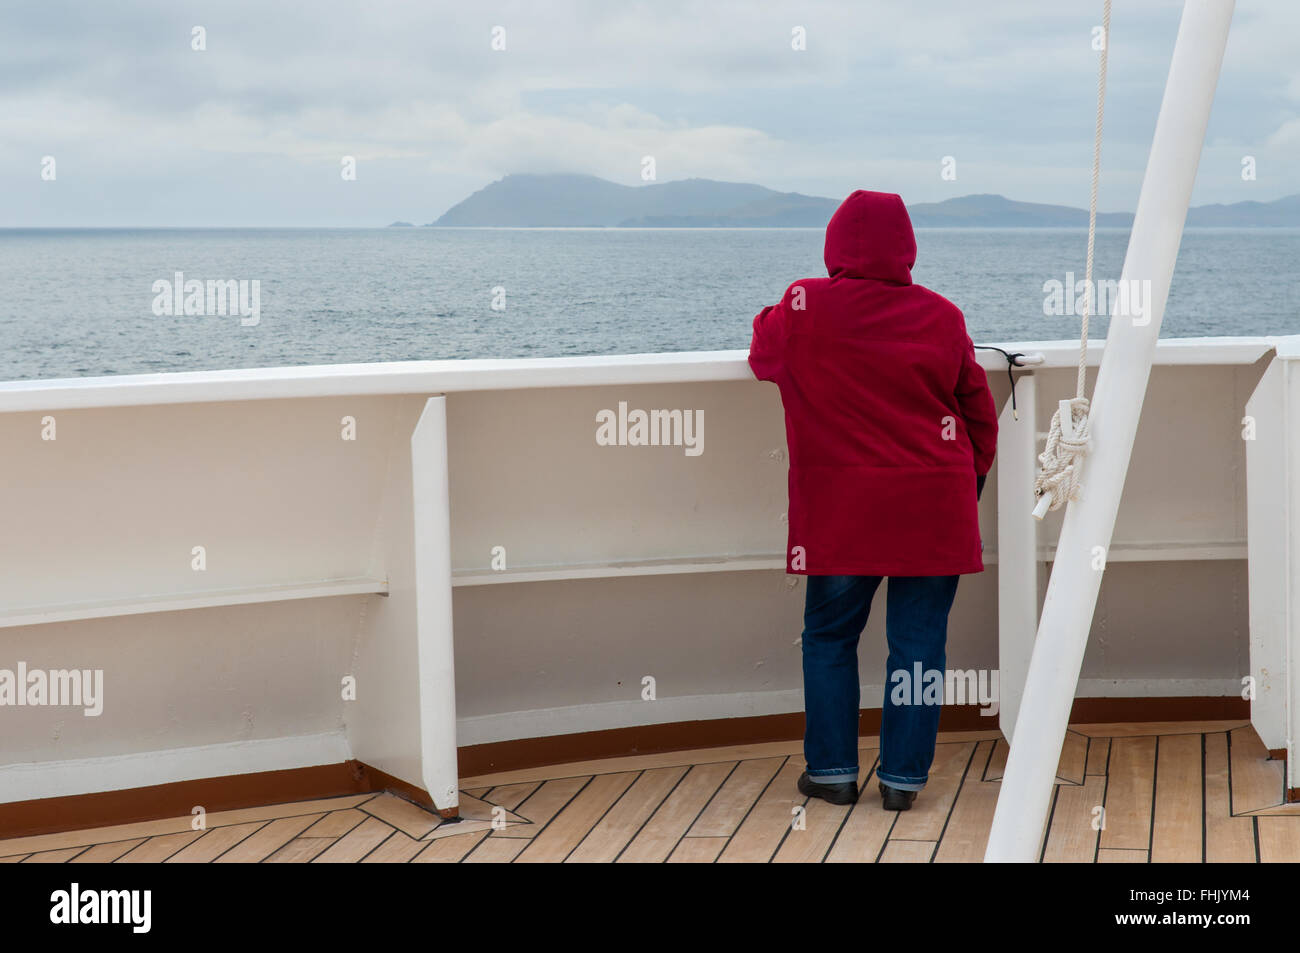 Cape Horn, Chile - December 11, 2012: Passenger on board the cruise ship Veendam looking forward on the bow on Cape - Stock Image